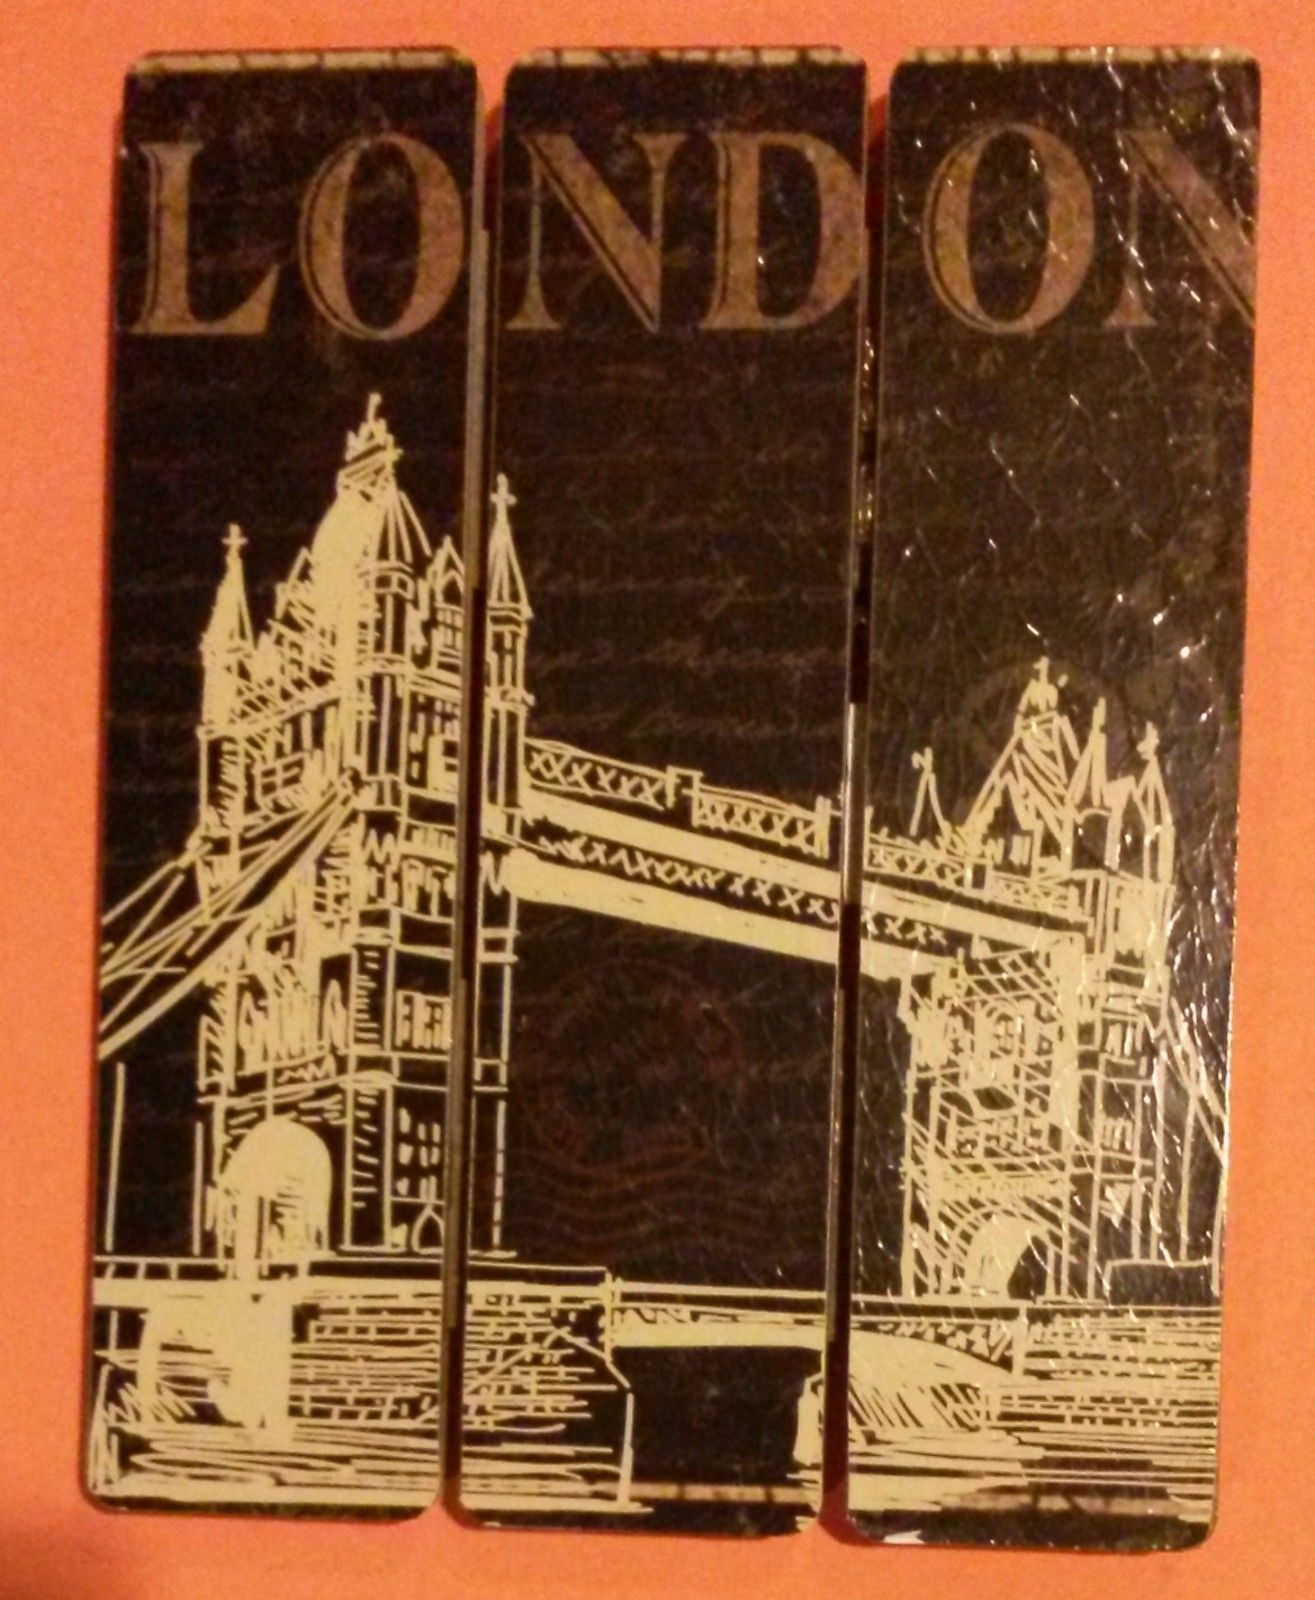 London Rome Wooden Plaque 2-pc Set 9x7 Sign Wood Wall Art NEW